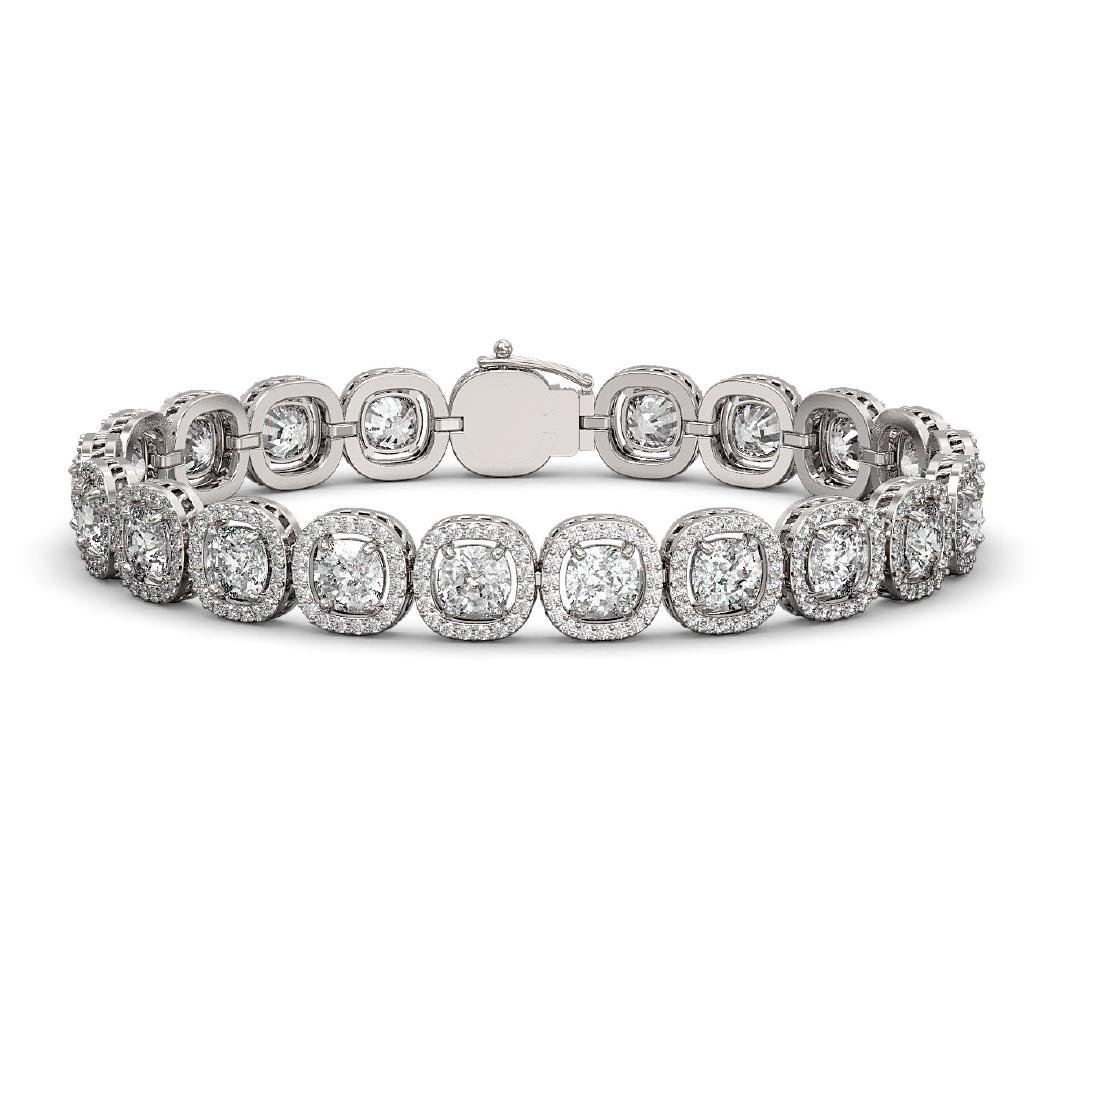 16.54 CTW Cushion Diamond Designer Bracelet 18K White